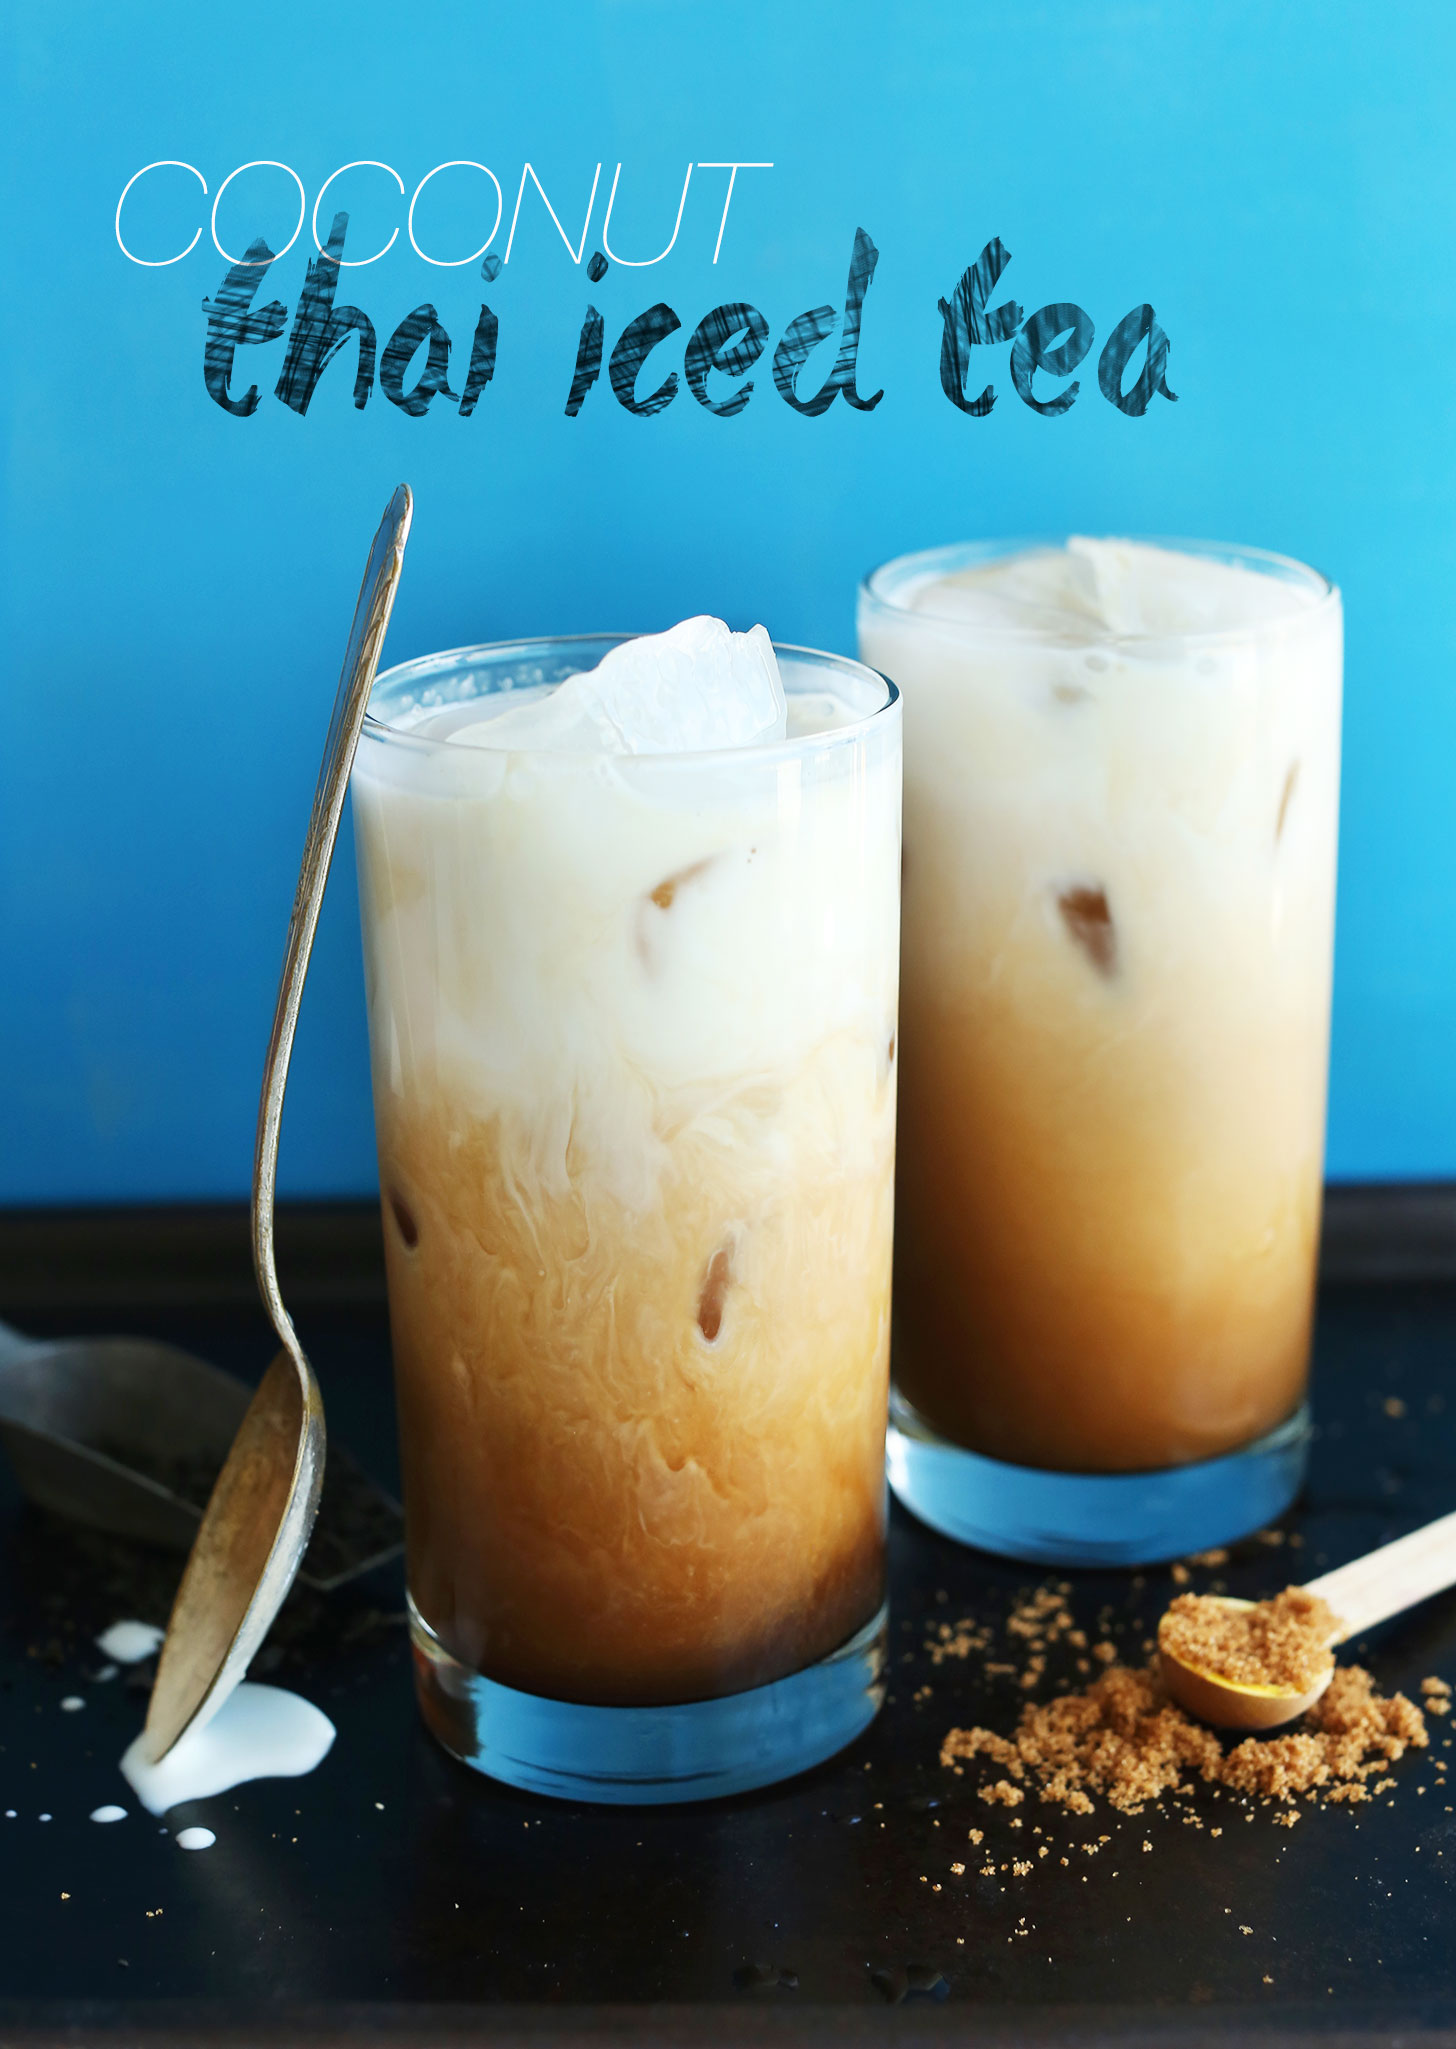 Two glasses of our Coconut Thai Iced Tea made with black tea, vanilla, natural sweeteners, and coconut milk